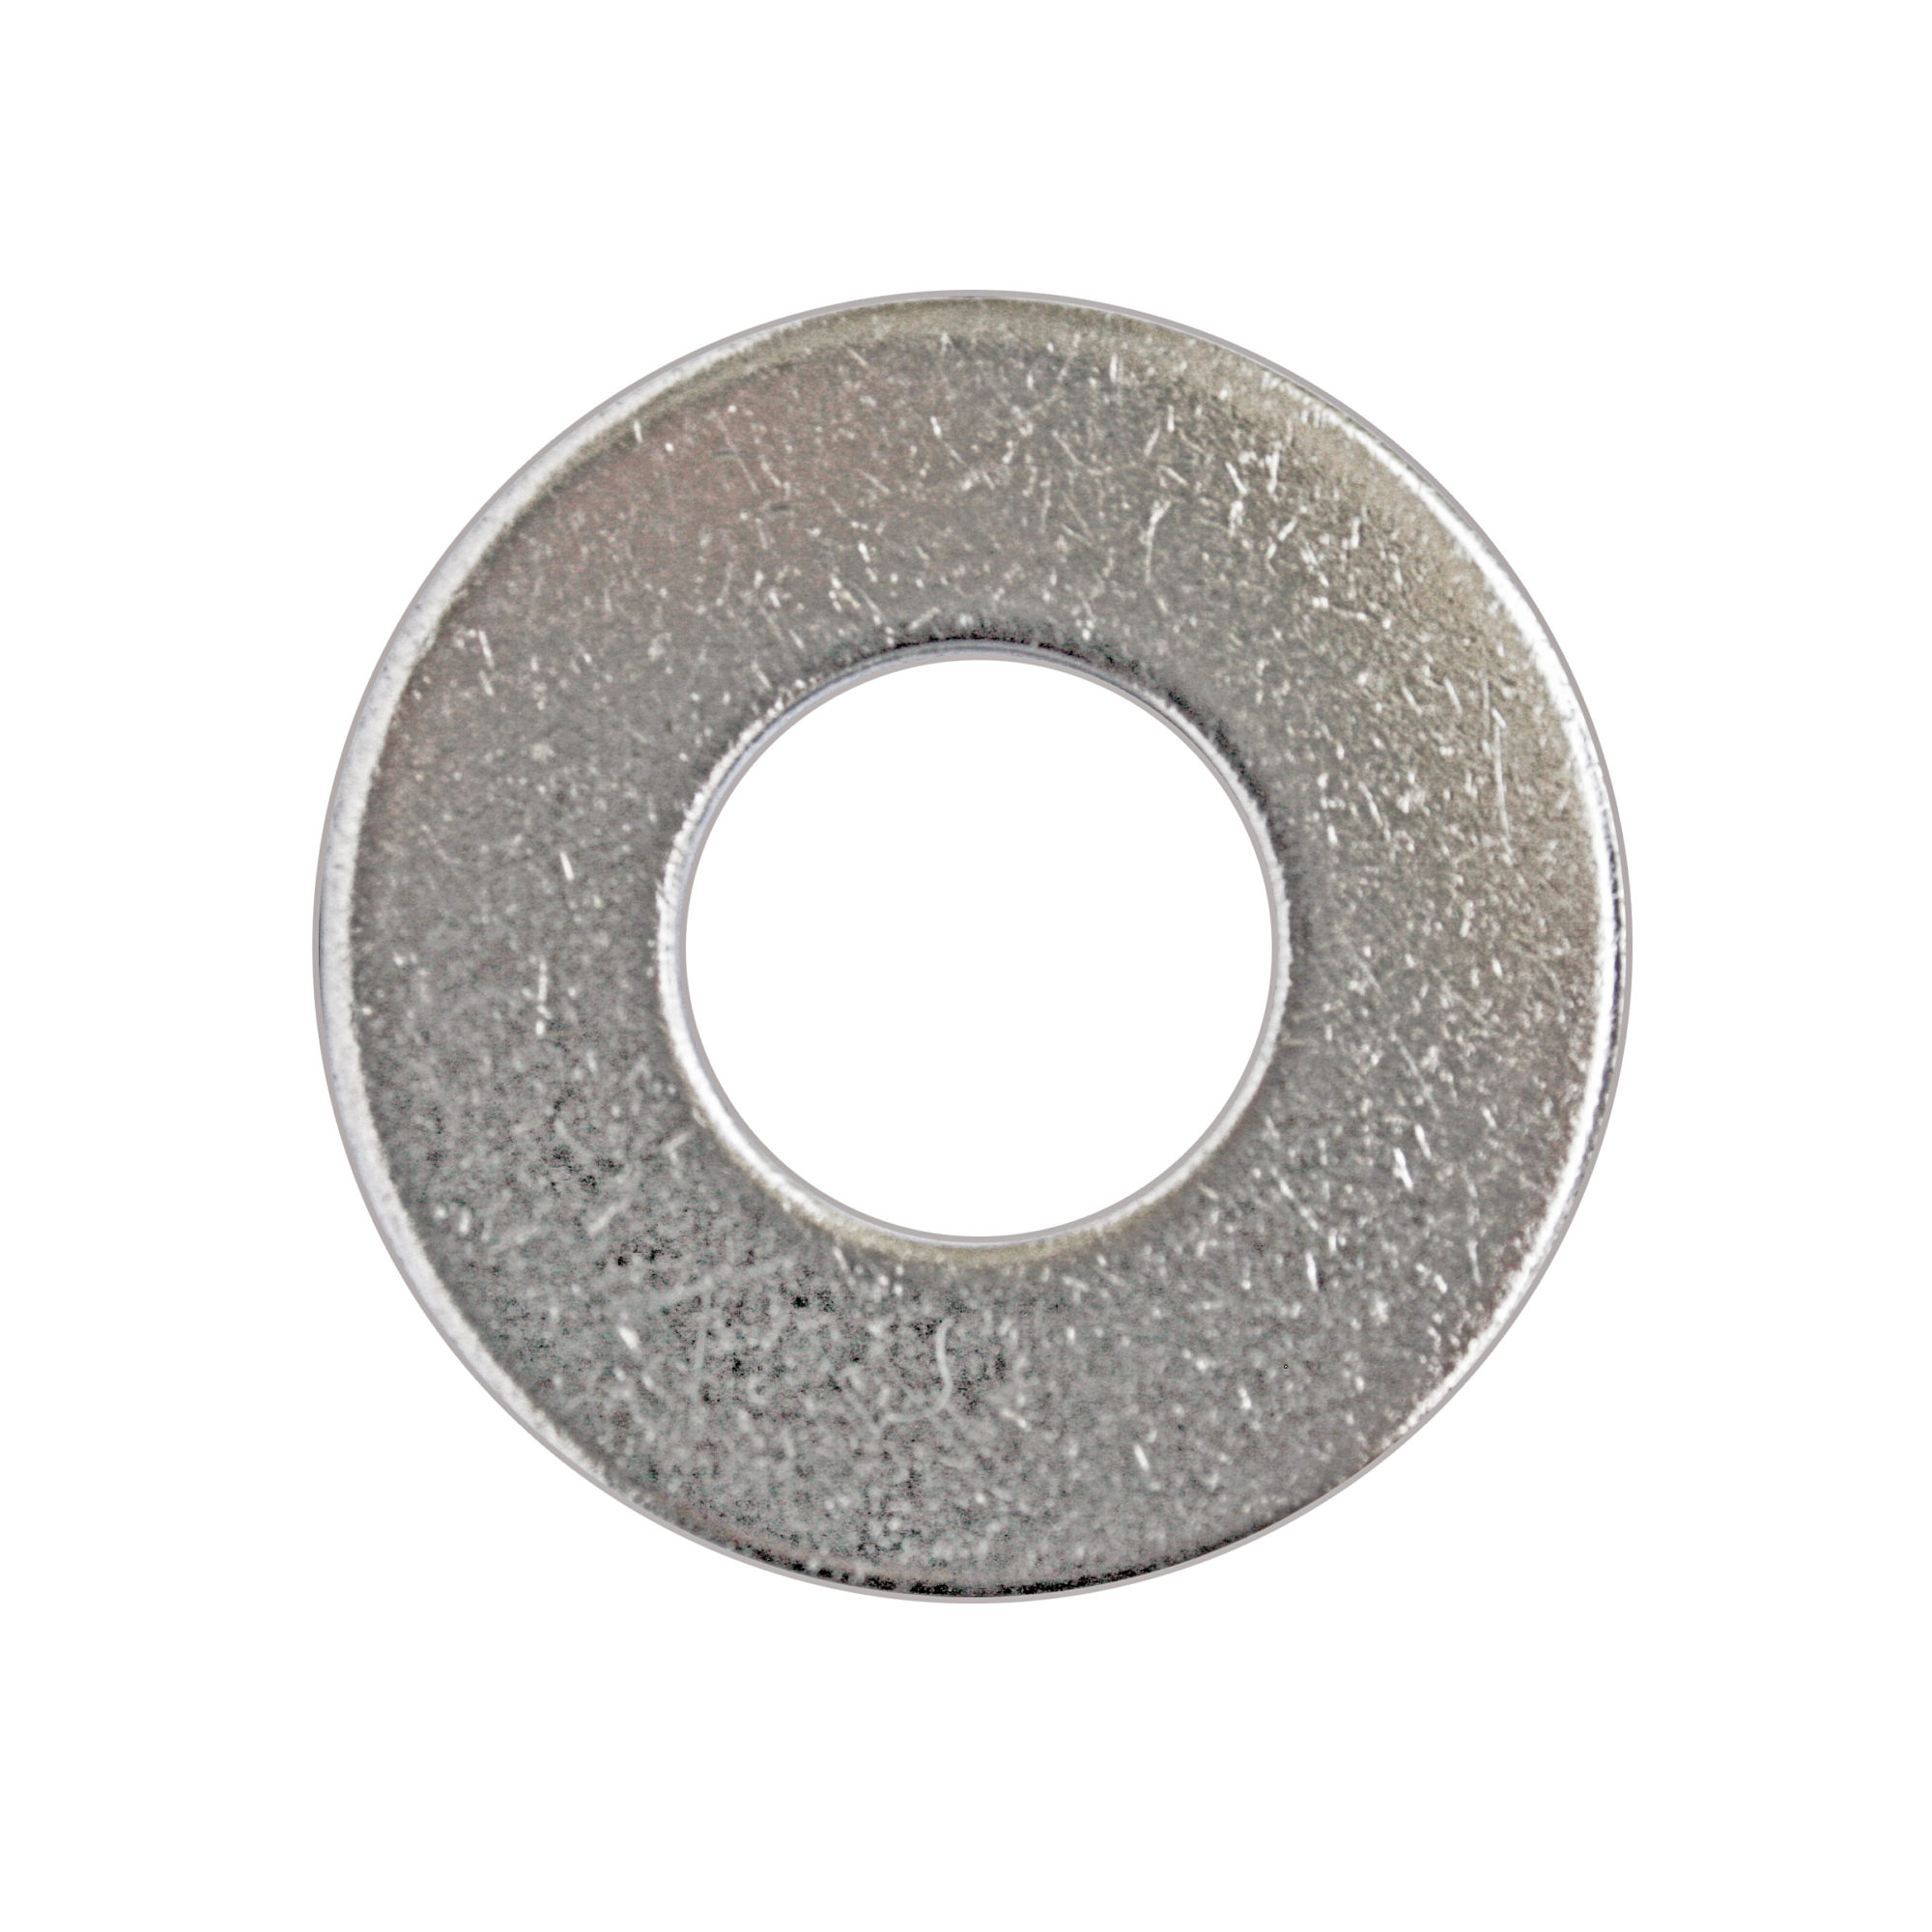 STAINLESS STEEL FLAT WASHER